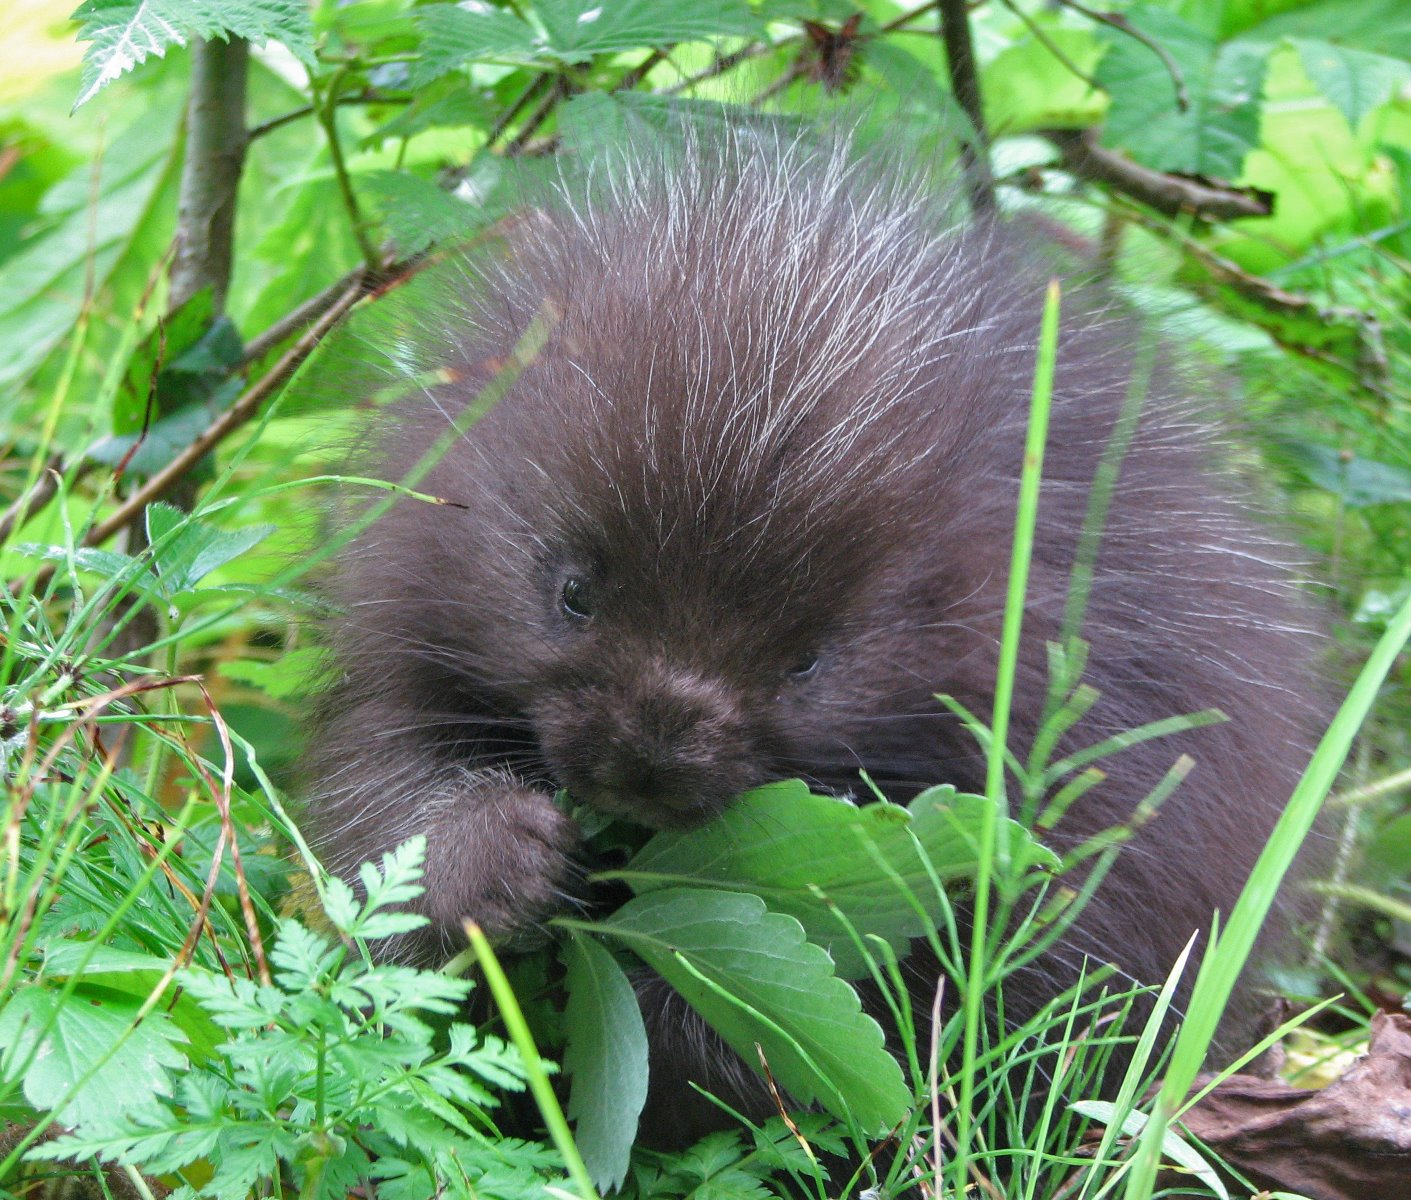 Baby porcupine at Bartlett Cove.